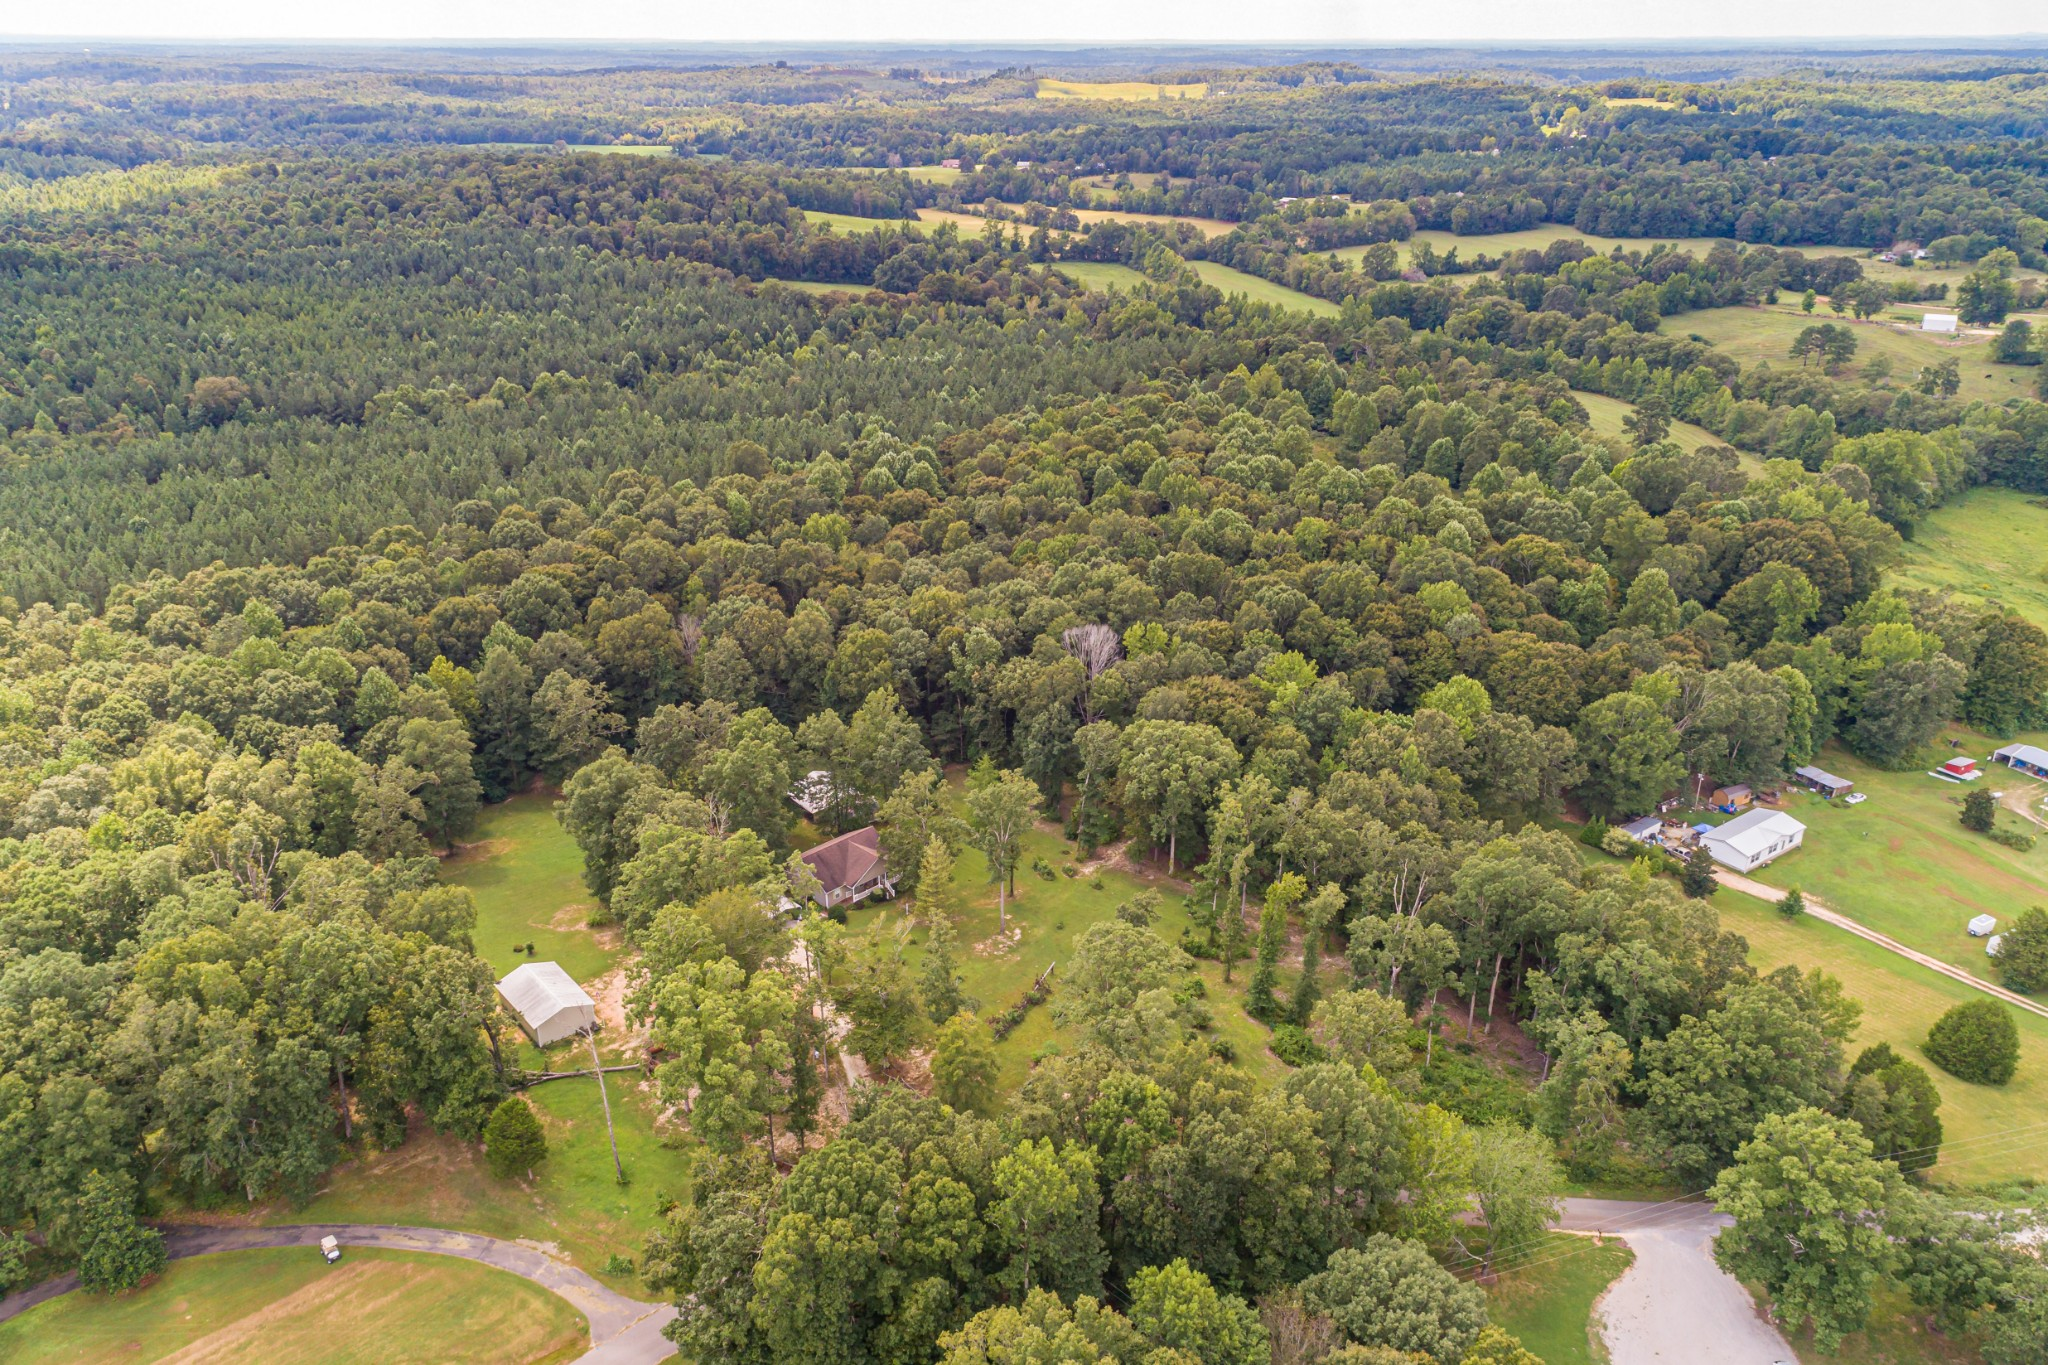 580 Haney School Rd Property Photo - Decaturville, TN real estate listing